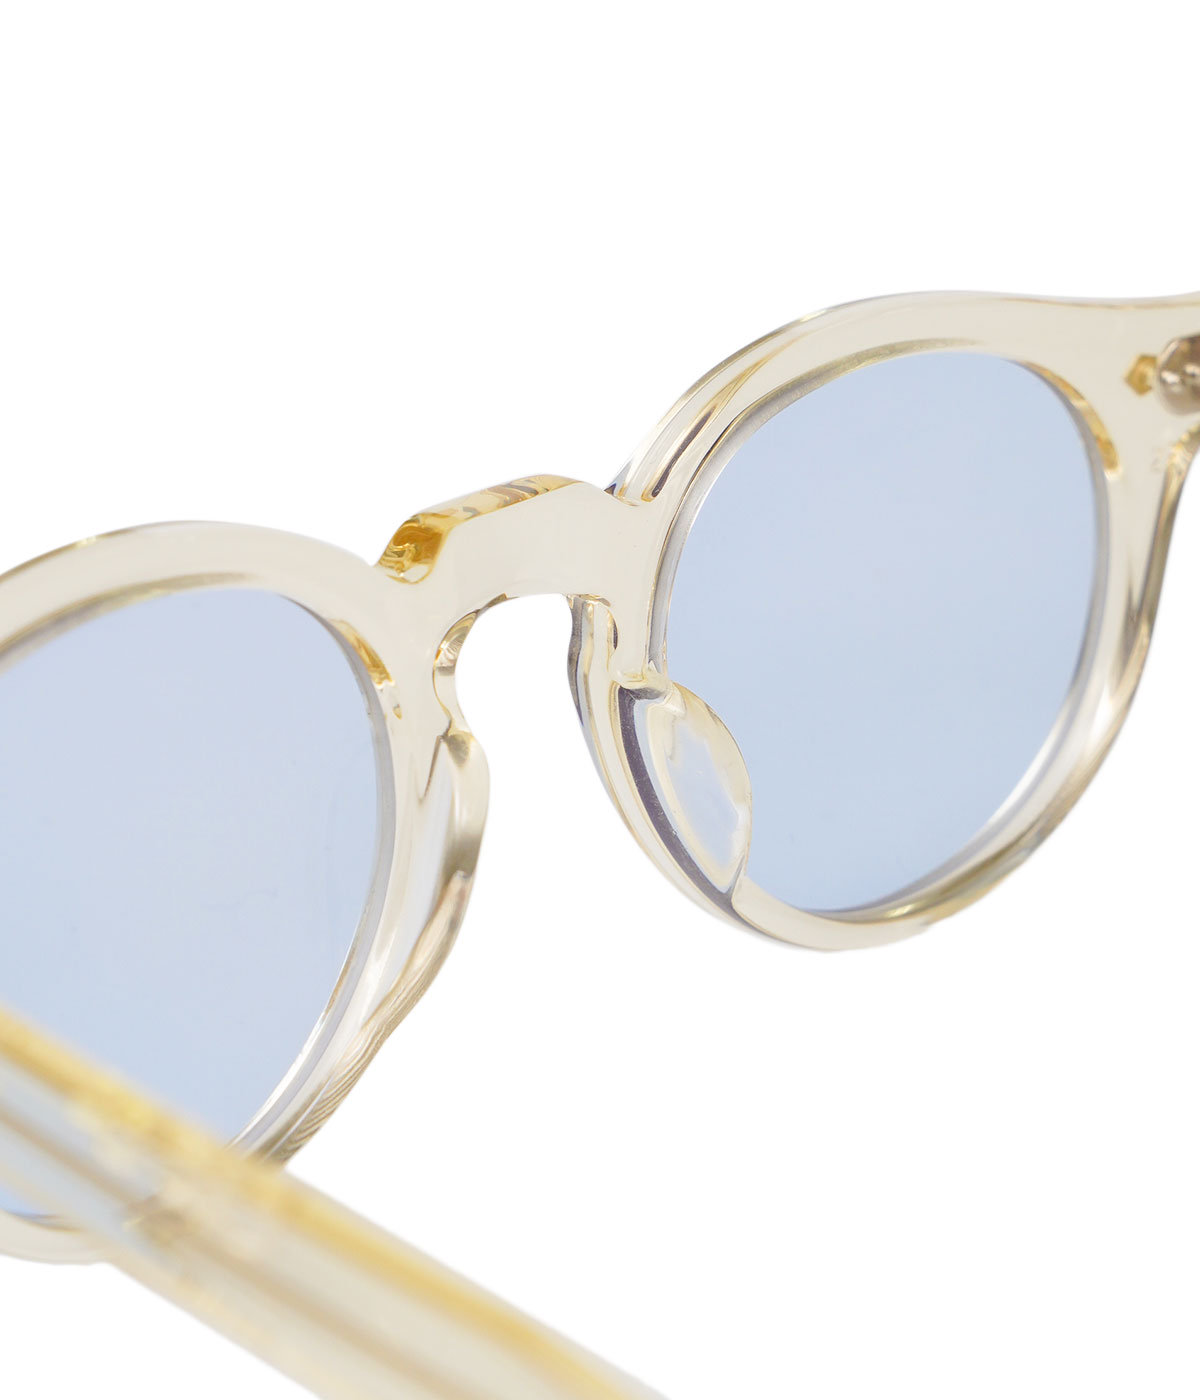 HAROLD 45-23 -CHAMPAGNE CLEAR / LIGHT BLUE -